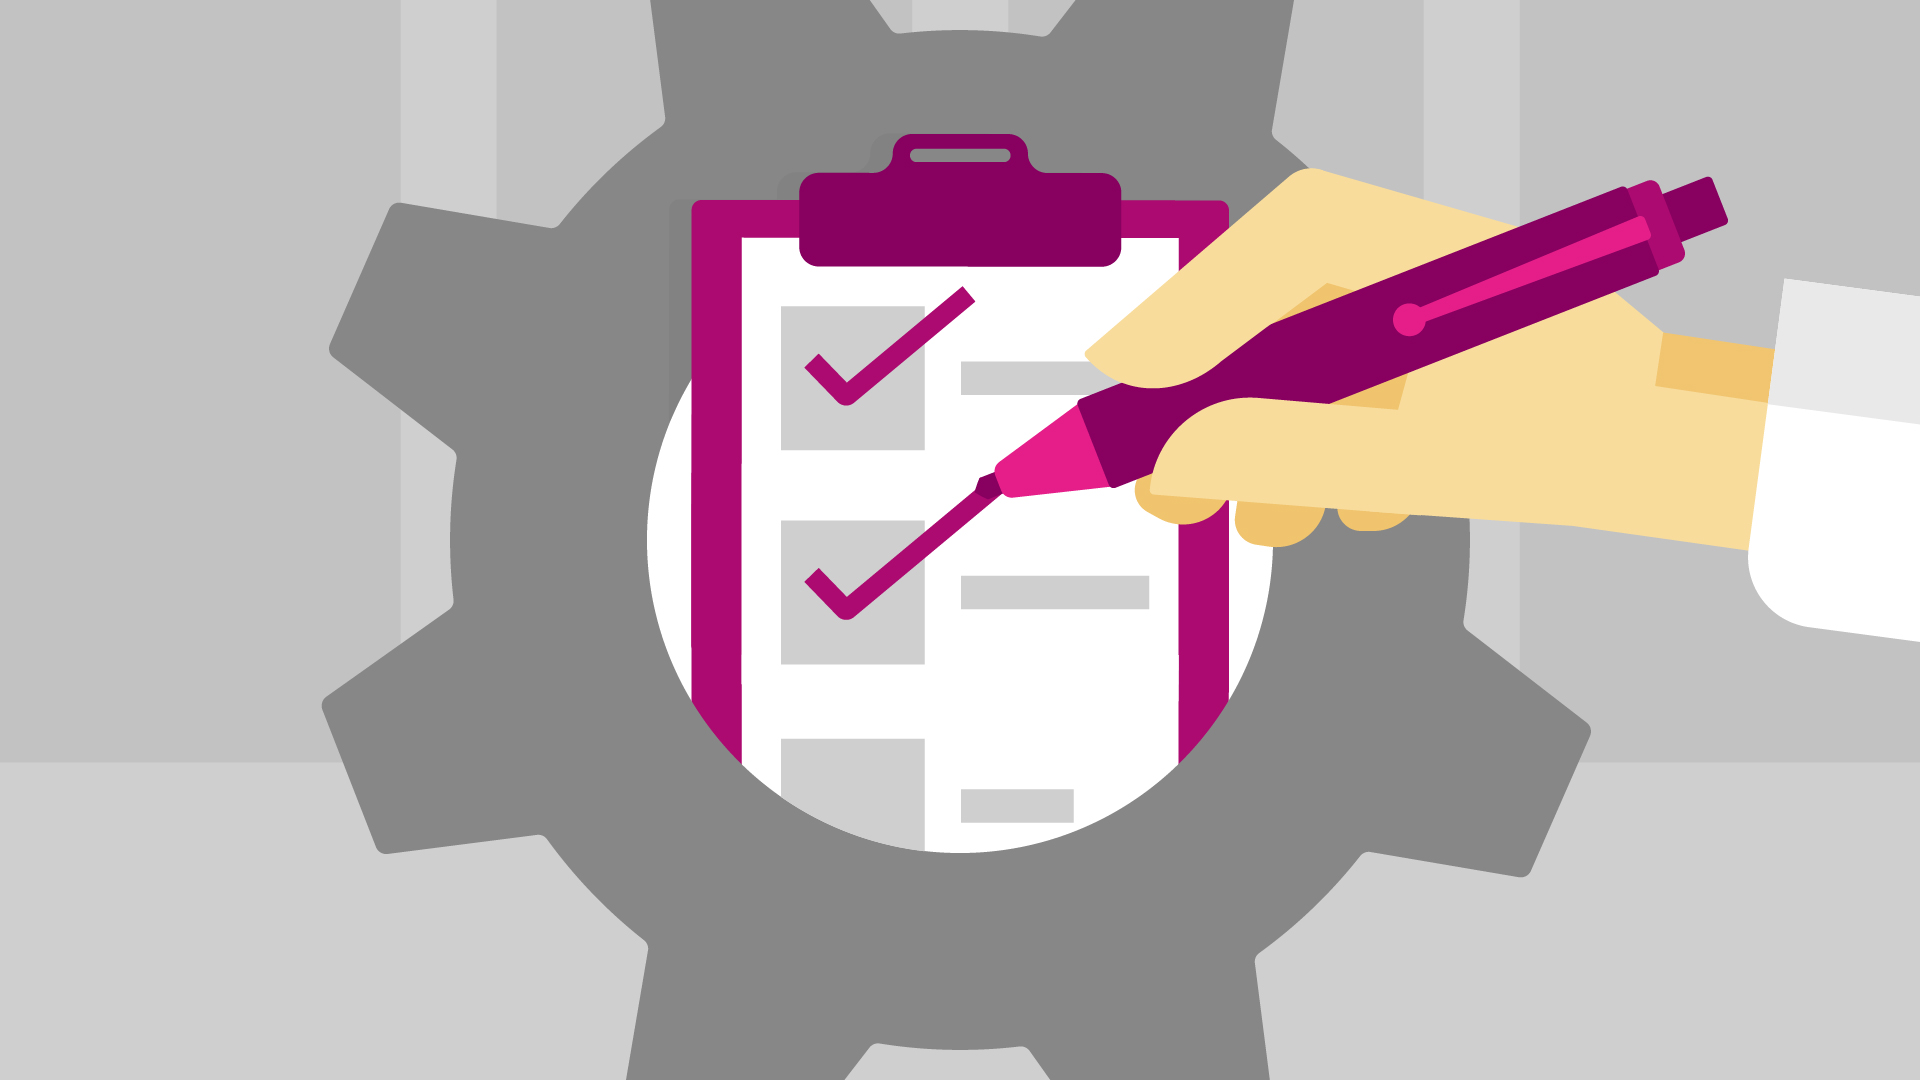 Can Easily Customer Satisfaction Measurement Be Easy And Affordable?